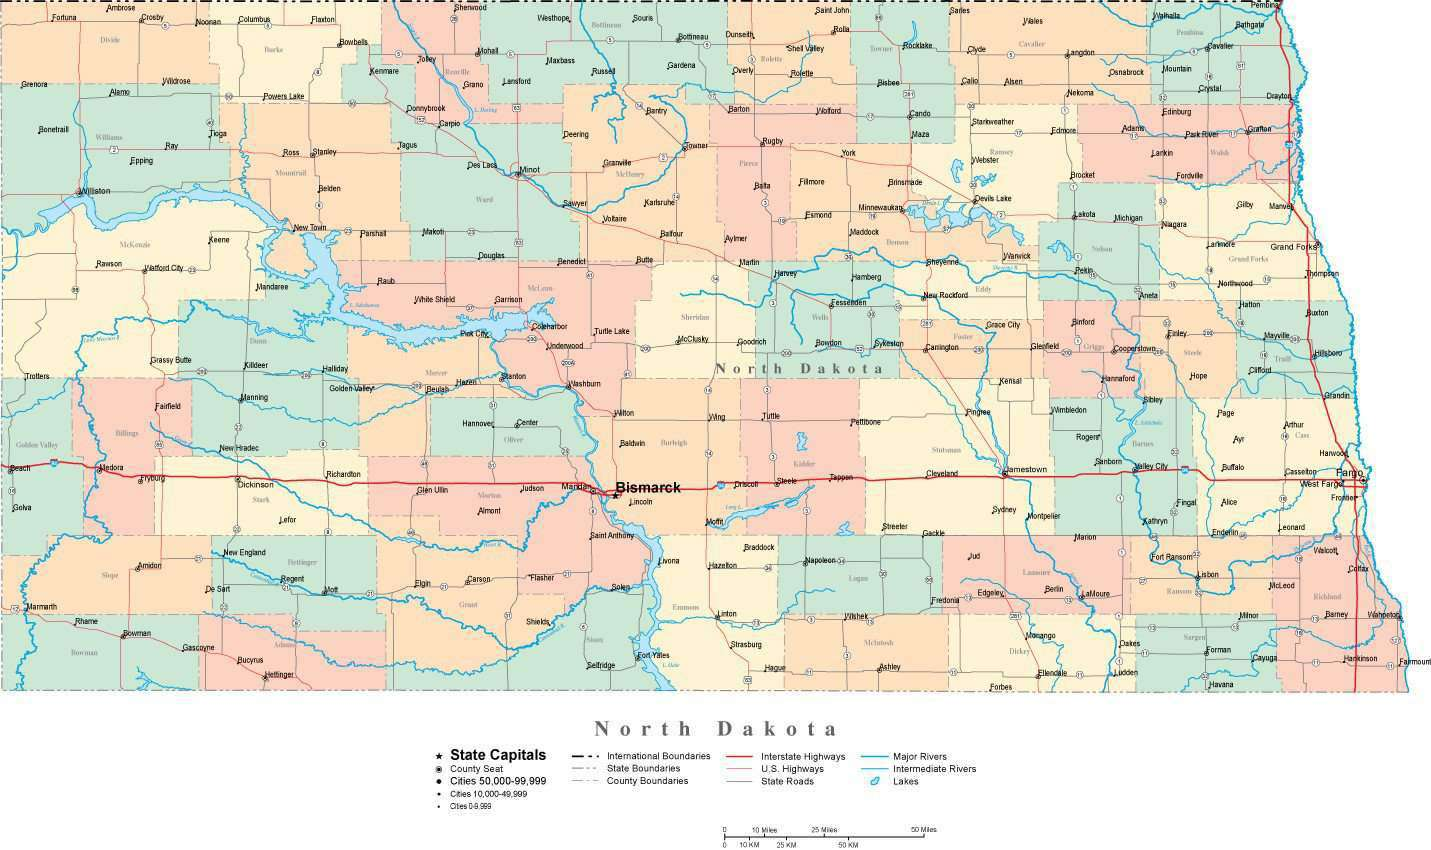 North Dakota State Map - Multi-Color Cut-Out Style - with Counties, Cities,  County Seats, Major Roads, Rivers and Lakes